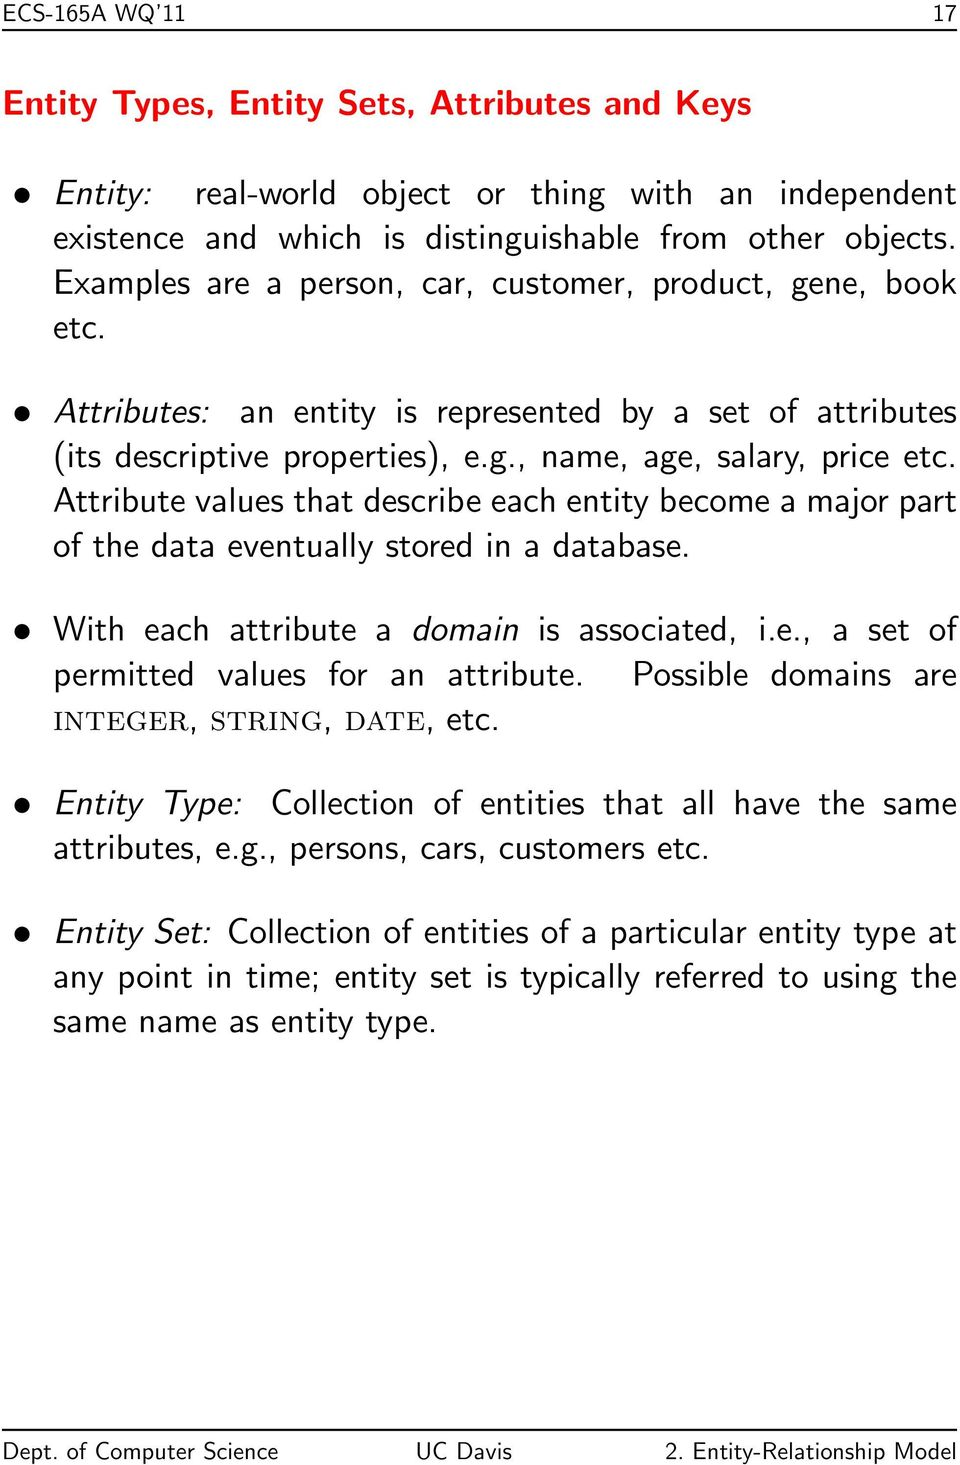 Attribute values that describe each entity become a major part of the data eventually stored in a database. With each attribute a domain is associated, i.e., a set of permitted values for an attribute.